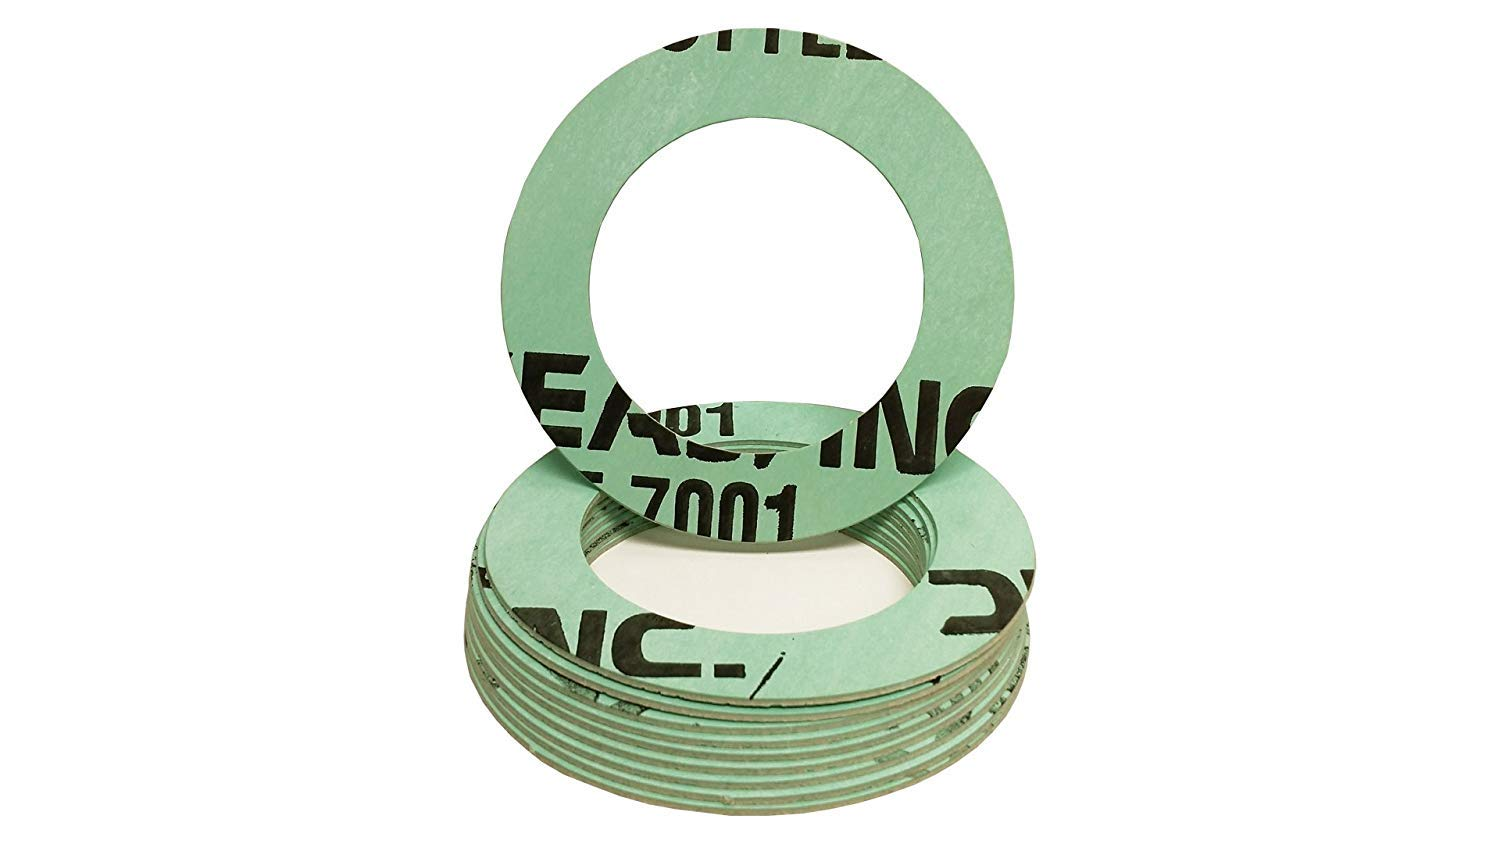 3'' Ring Gasket, 300# Class Flange, NSF-61 Certified, 1/16'' Thick (Qty 10 gaskets) by Sterling Seal & Supply, Inc. (STCC)